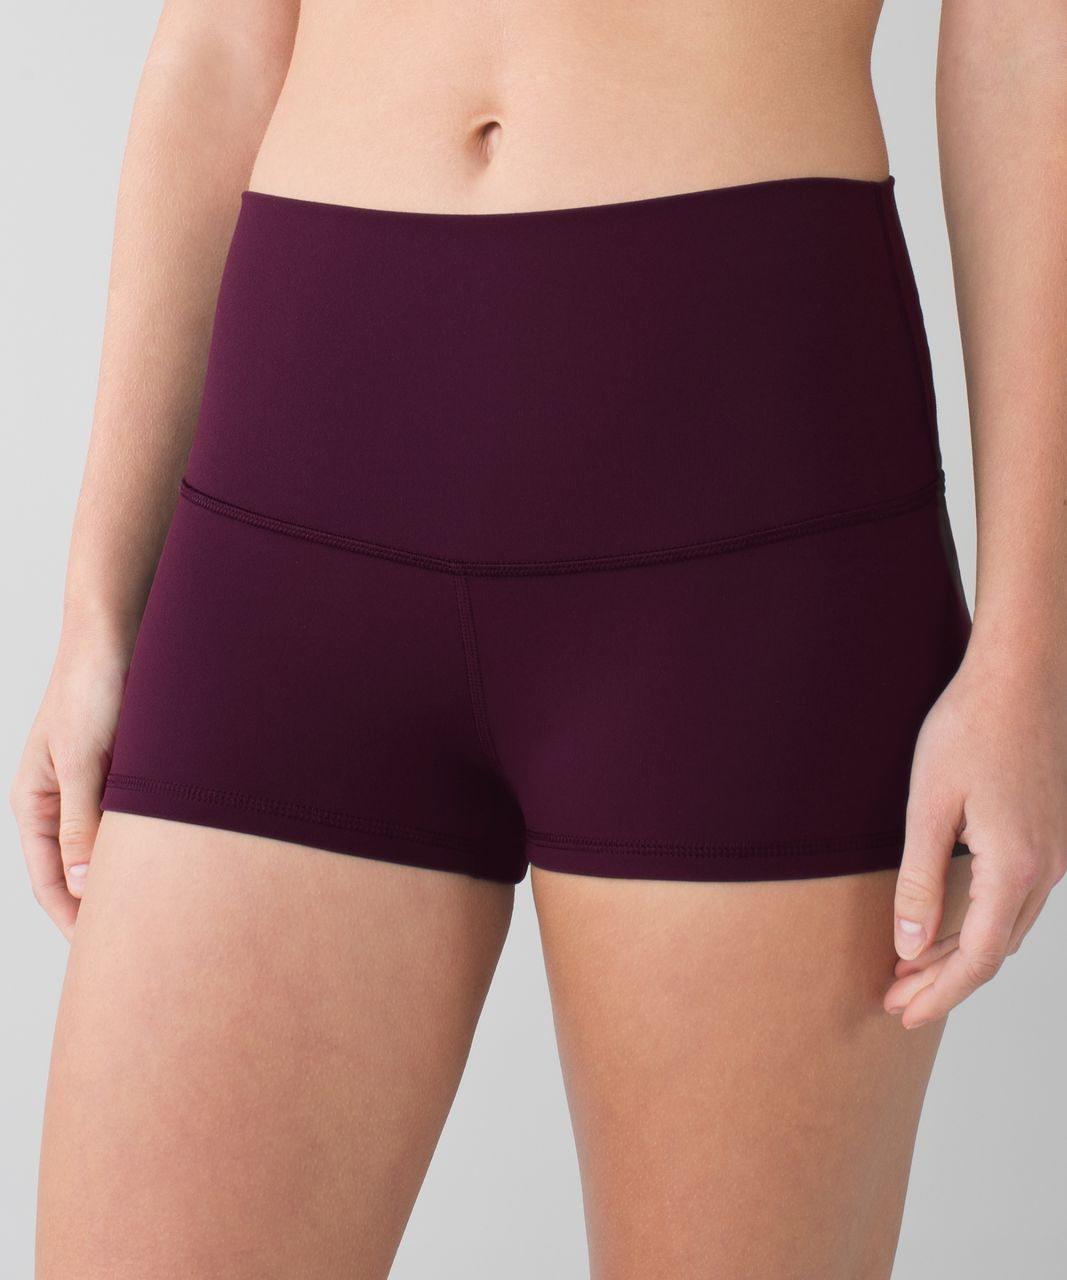 Lululemon Boogie Short *Full-On Luon (Roll Down) - Black Cherry